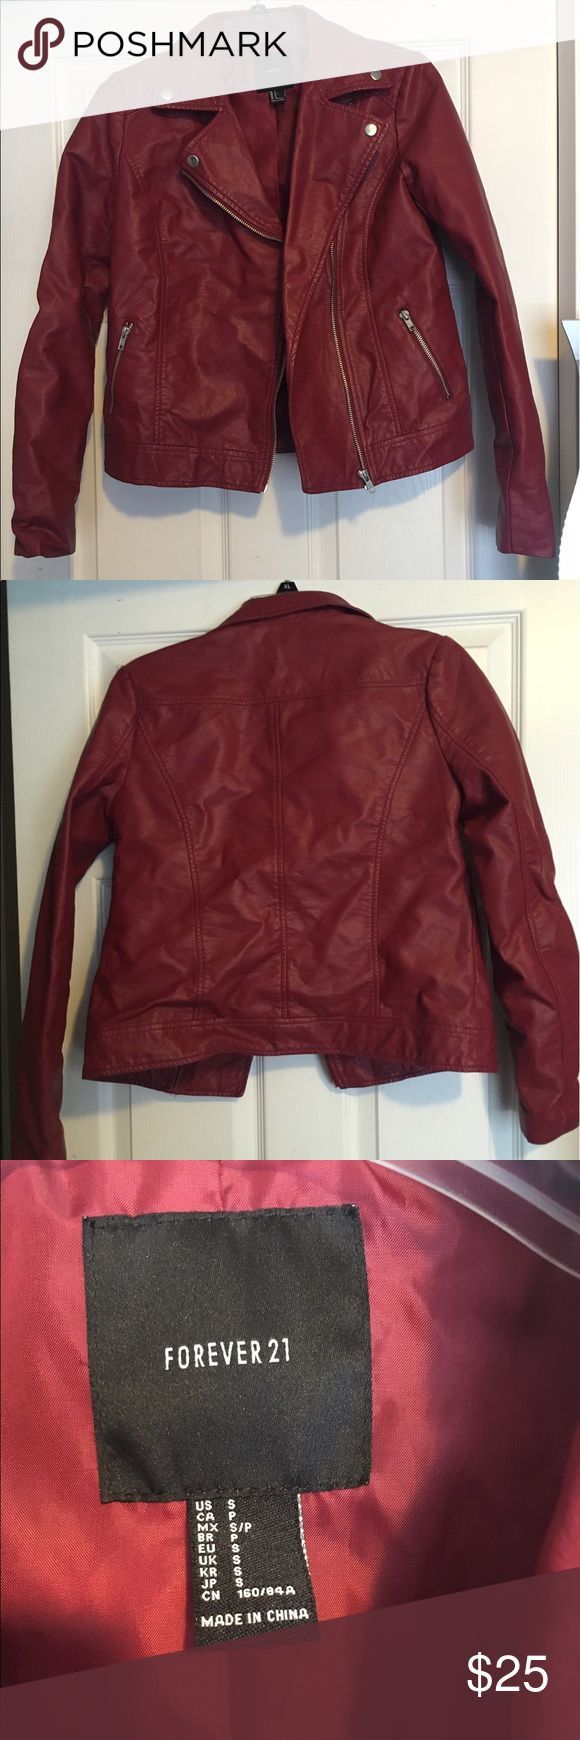 Forever 21 Faux Red Leather Jacket Super cute and still in great condition! Forever 21 Jackets & Coats